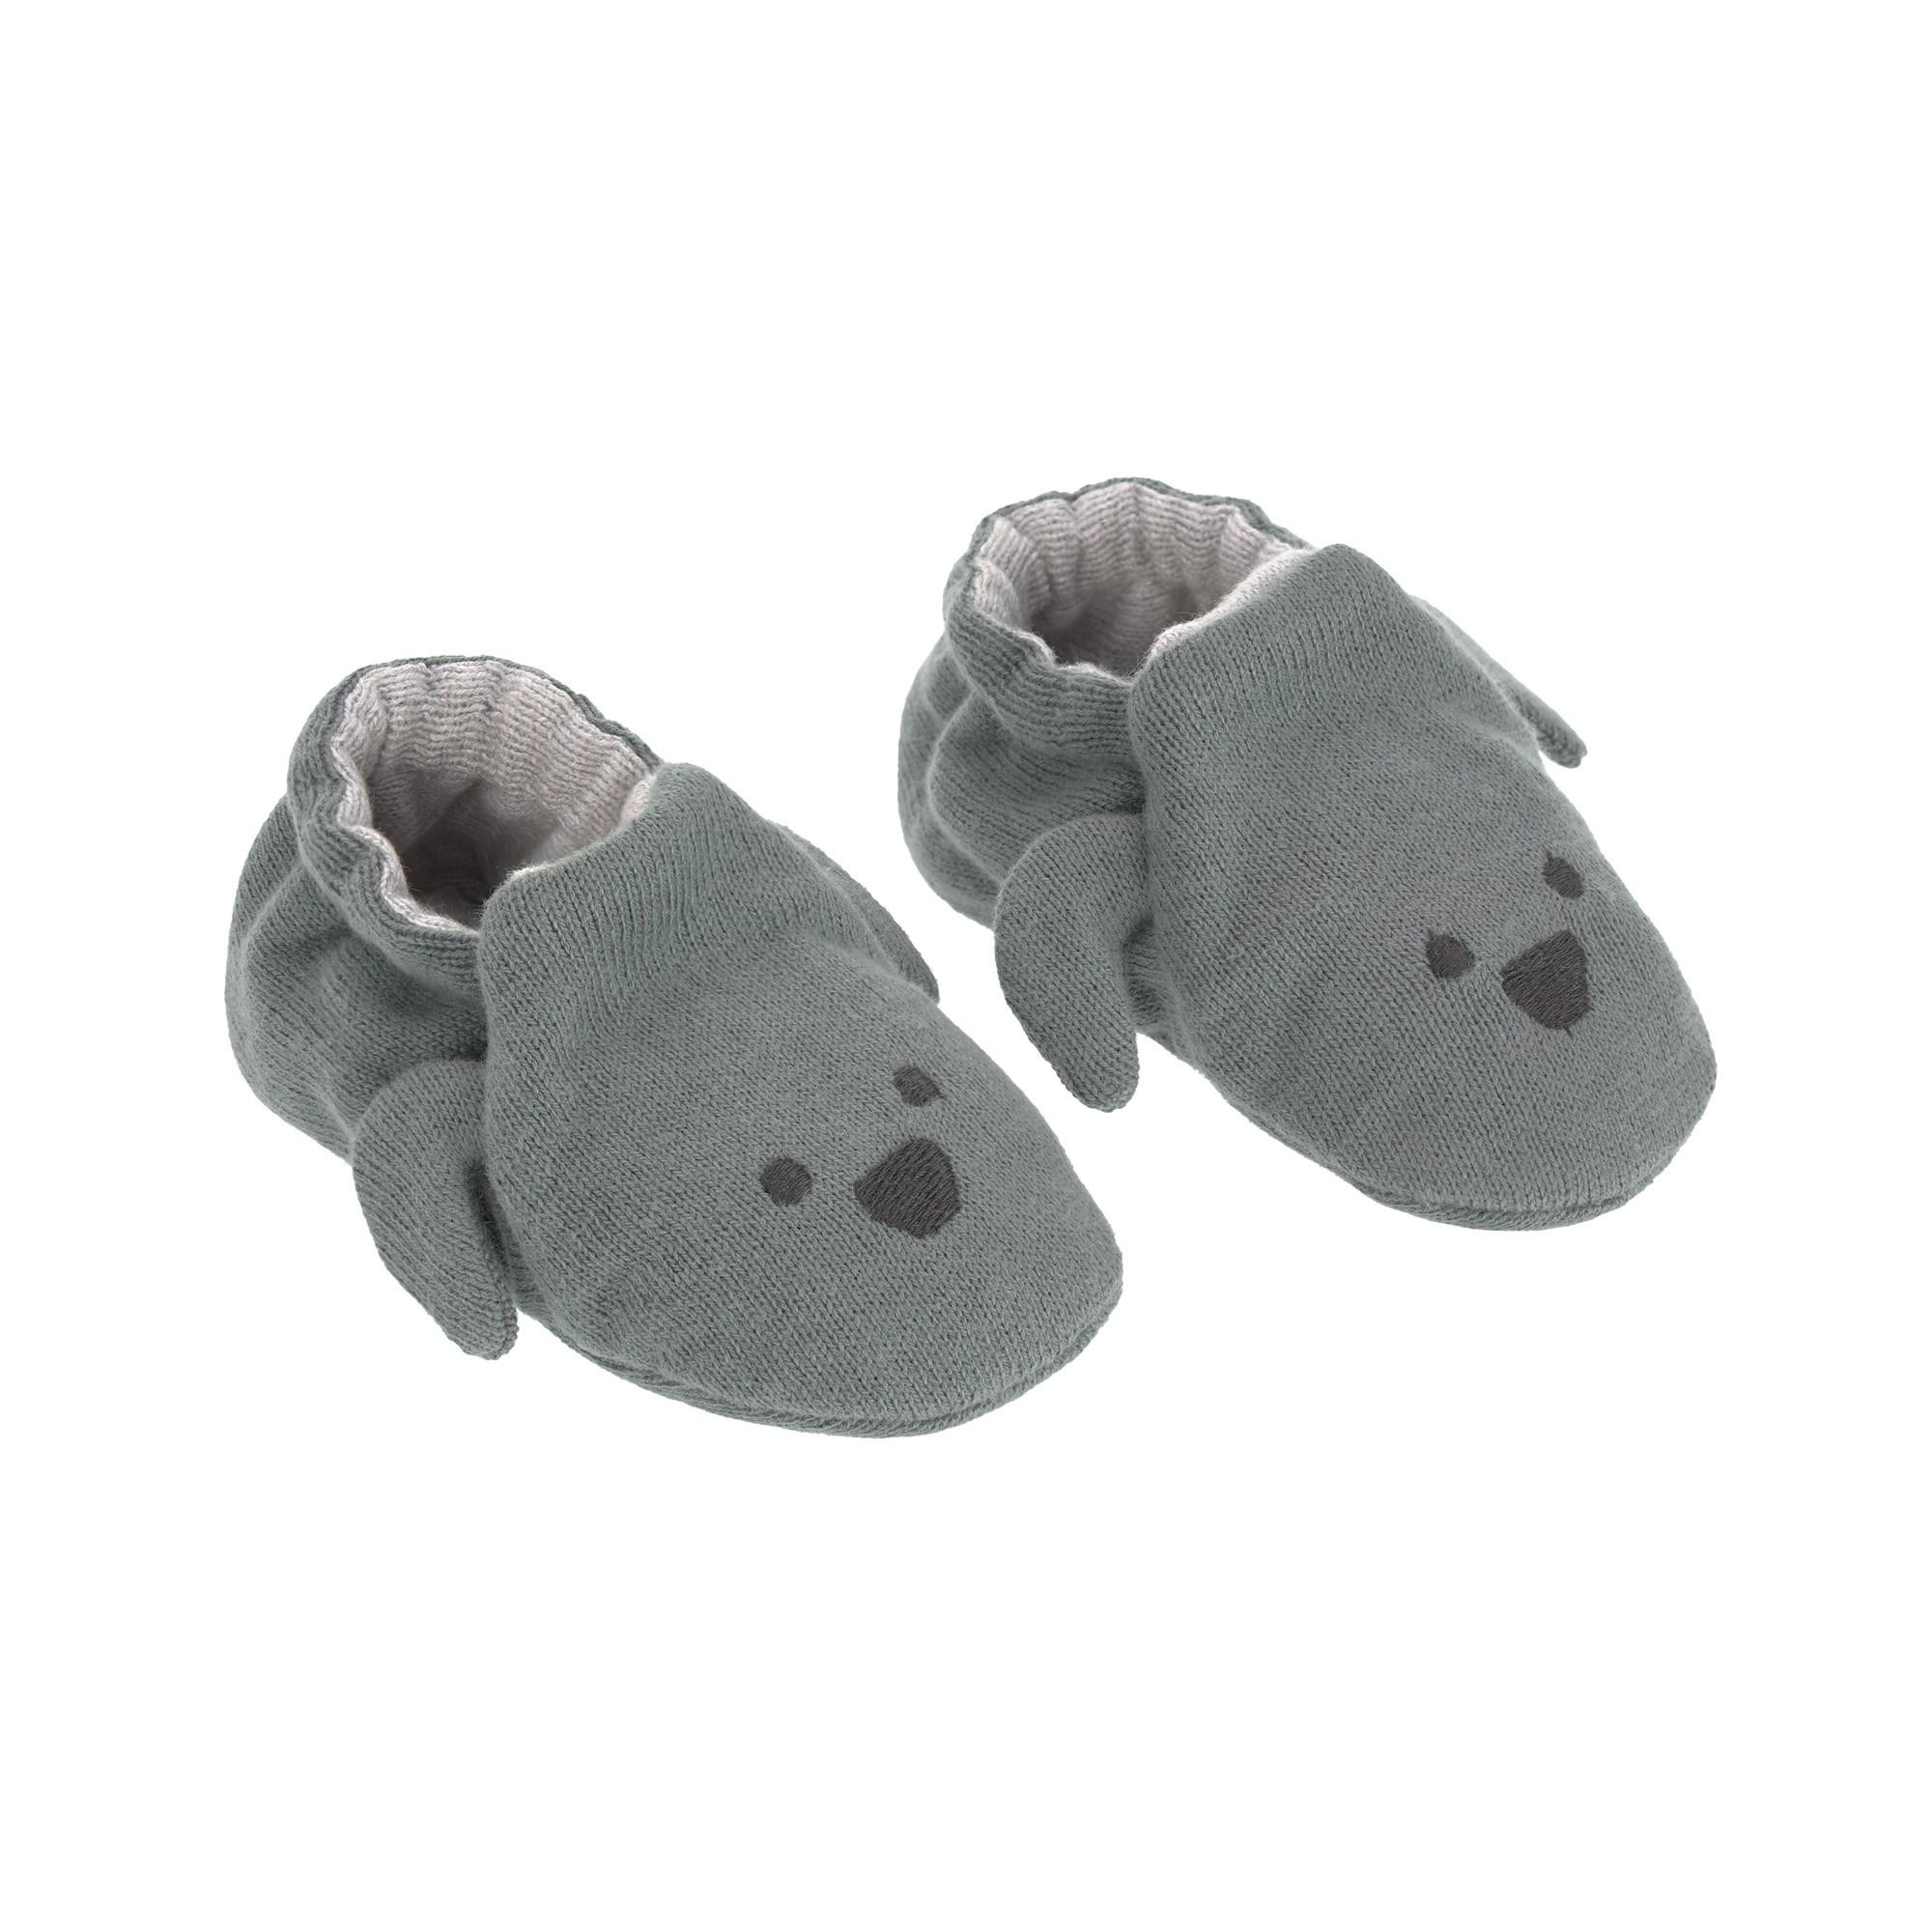 Lassig - Baby Shoes Gots Little Chums Dog, One Size